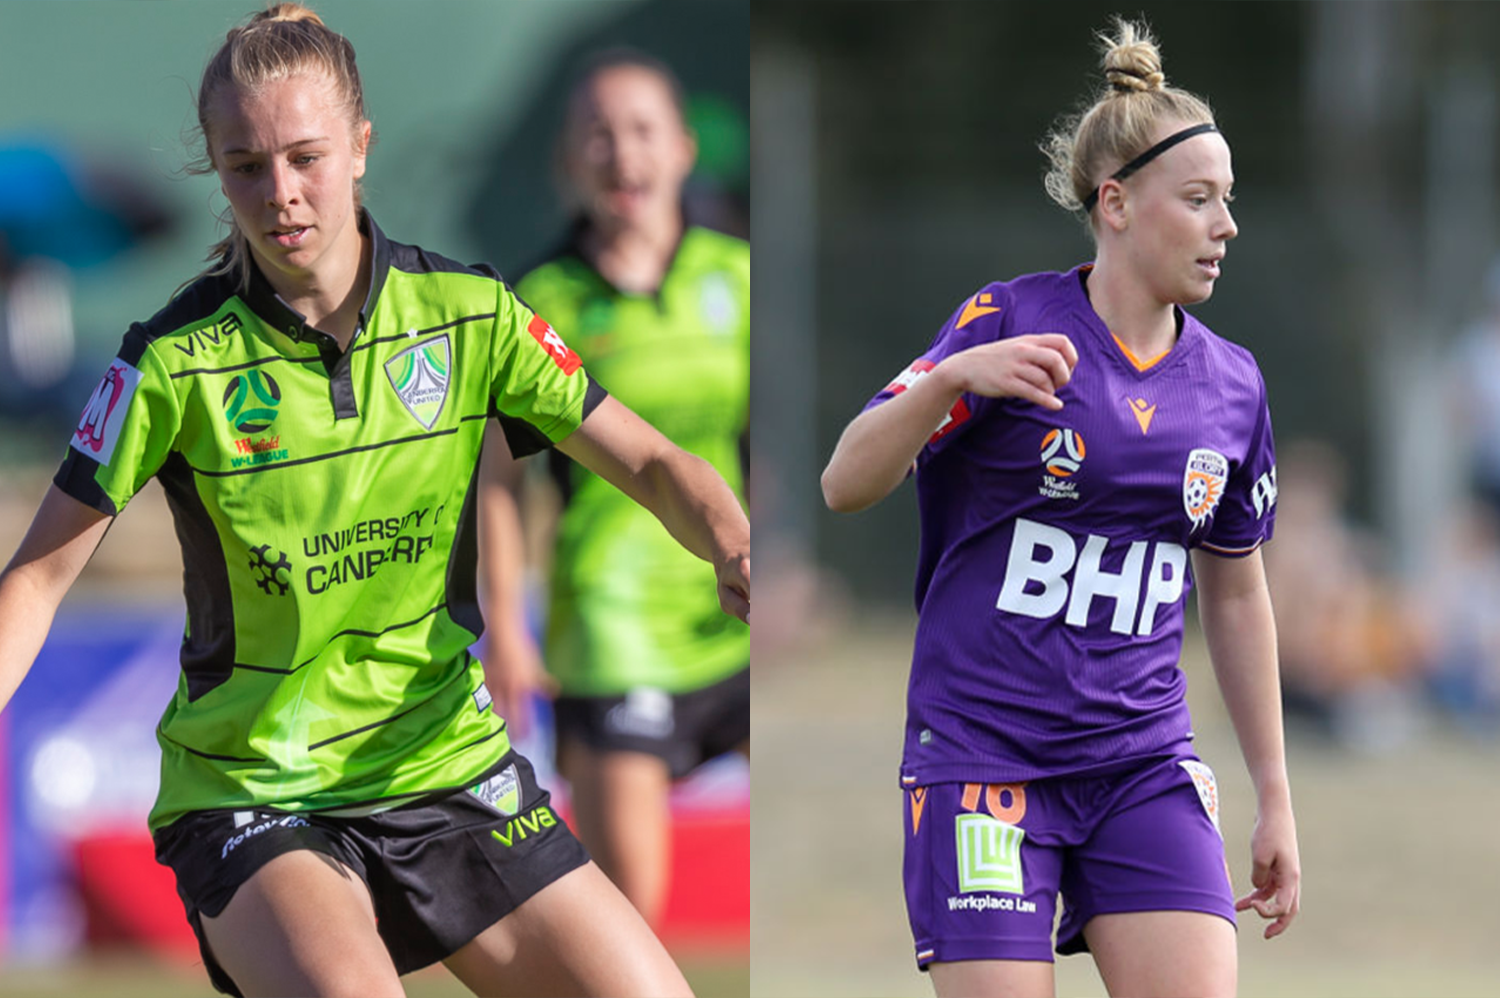 Crofts and Foletta join Canberra United squad